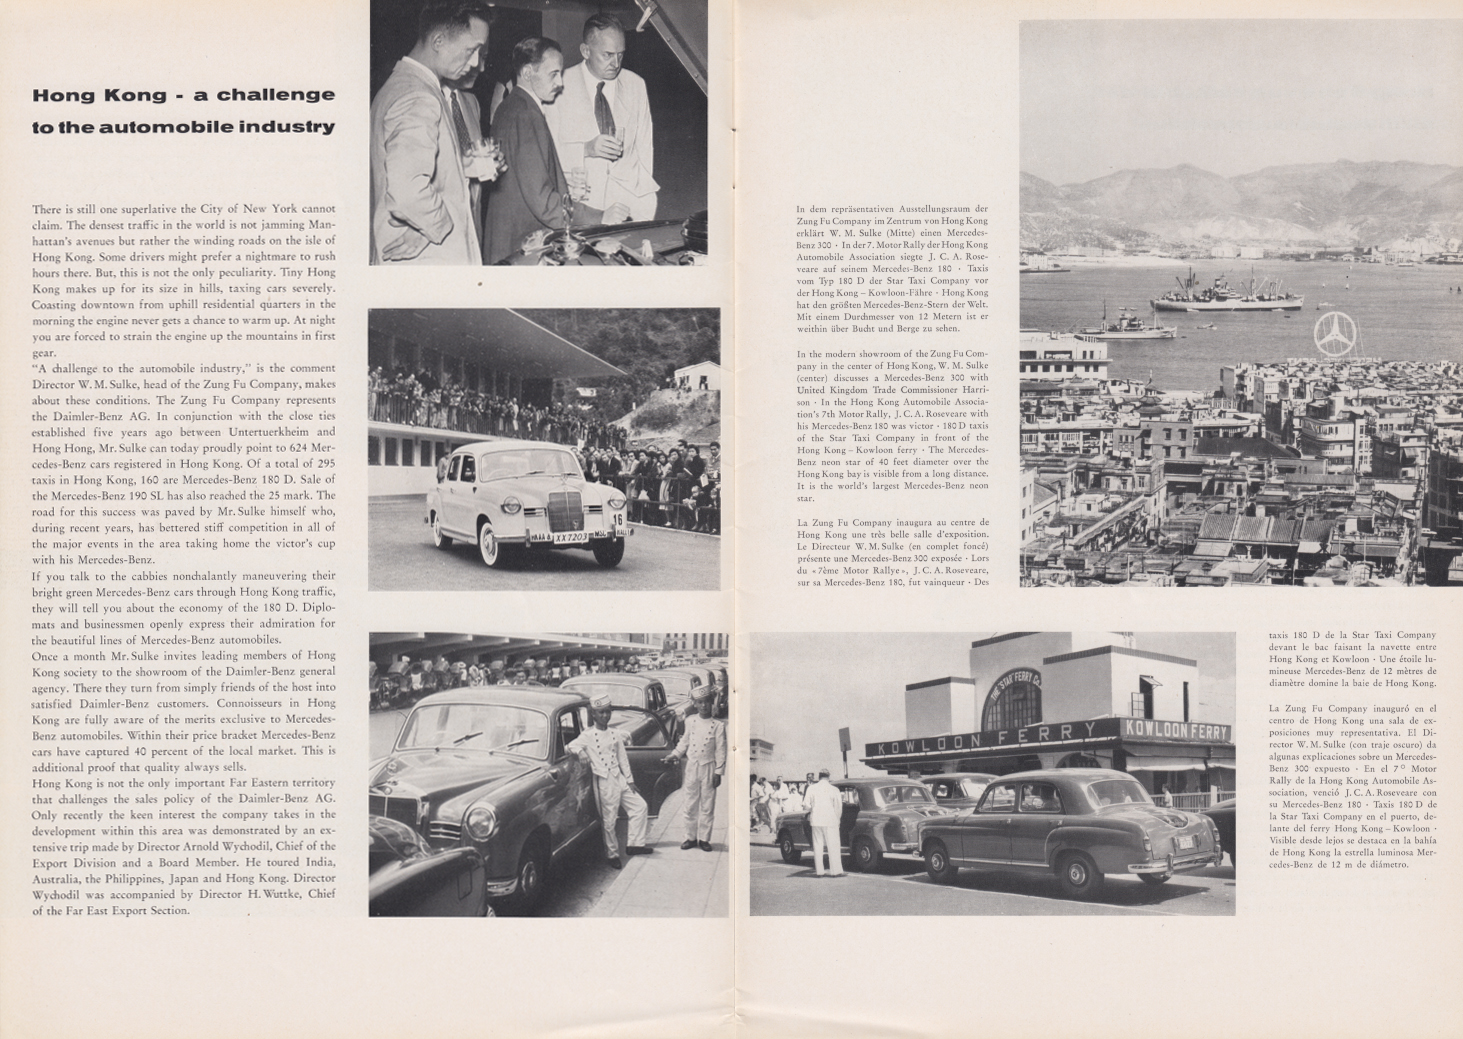 (REVISTA): Periódico In aller welt n.º 29 - Mercedes-Benz no mundo - 1959 - multilingue 004